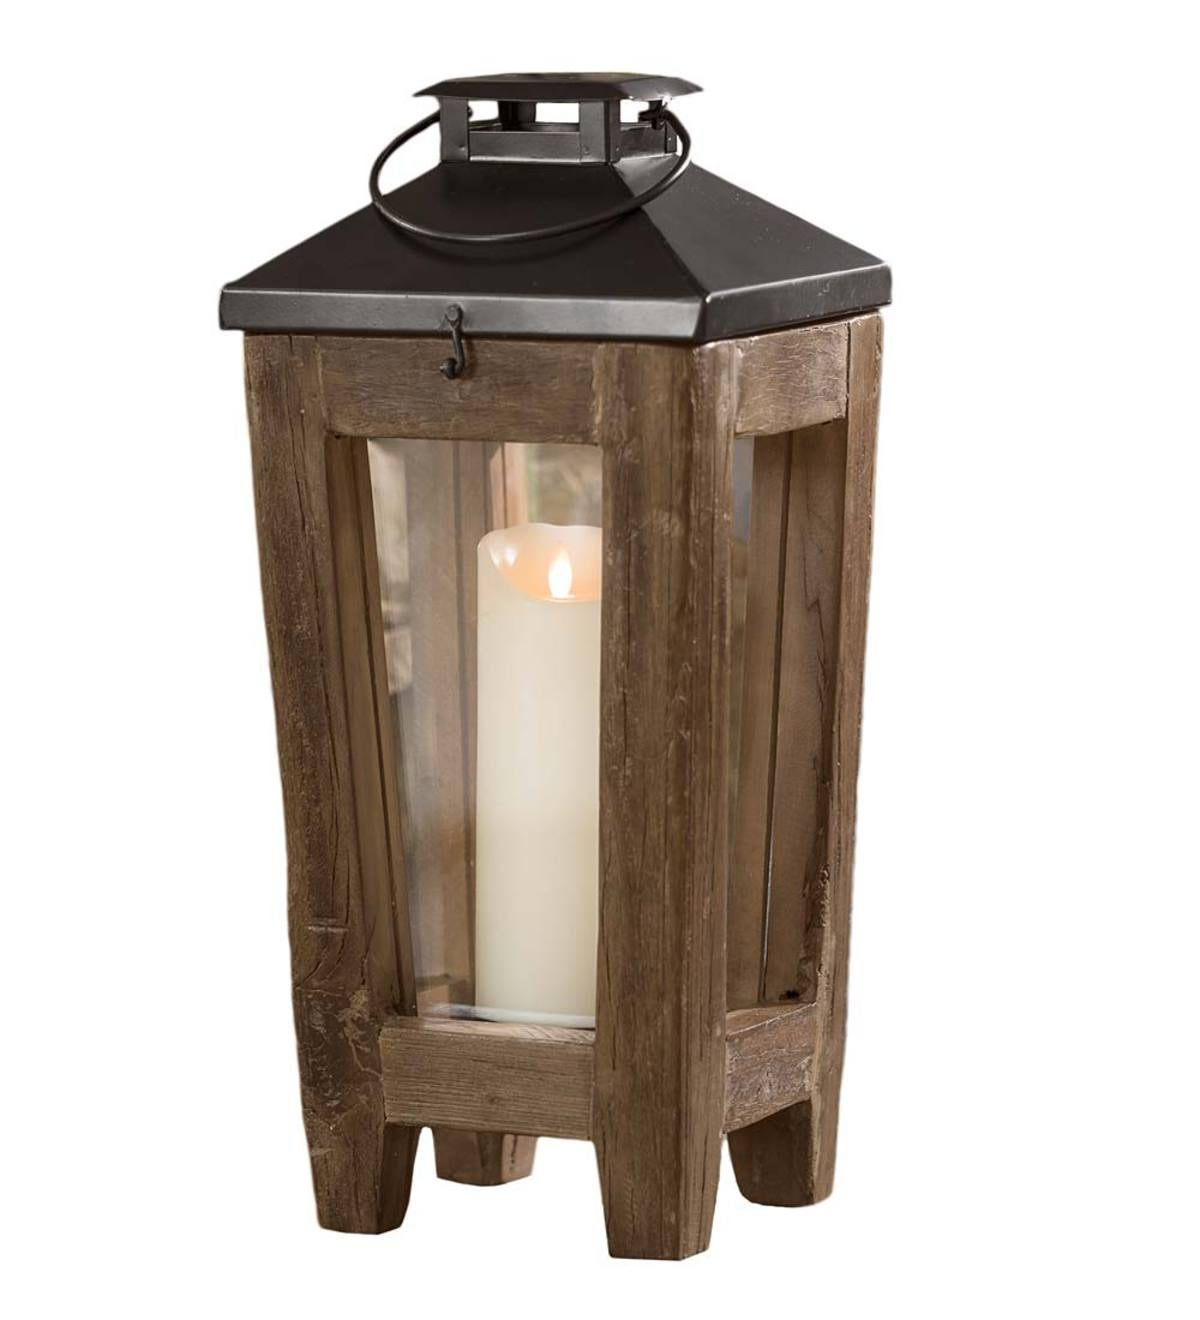 Large Reclaimed Wood and Metal Lantern